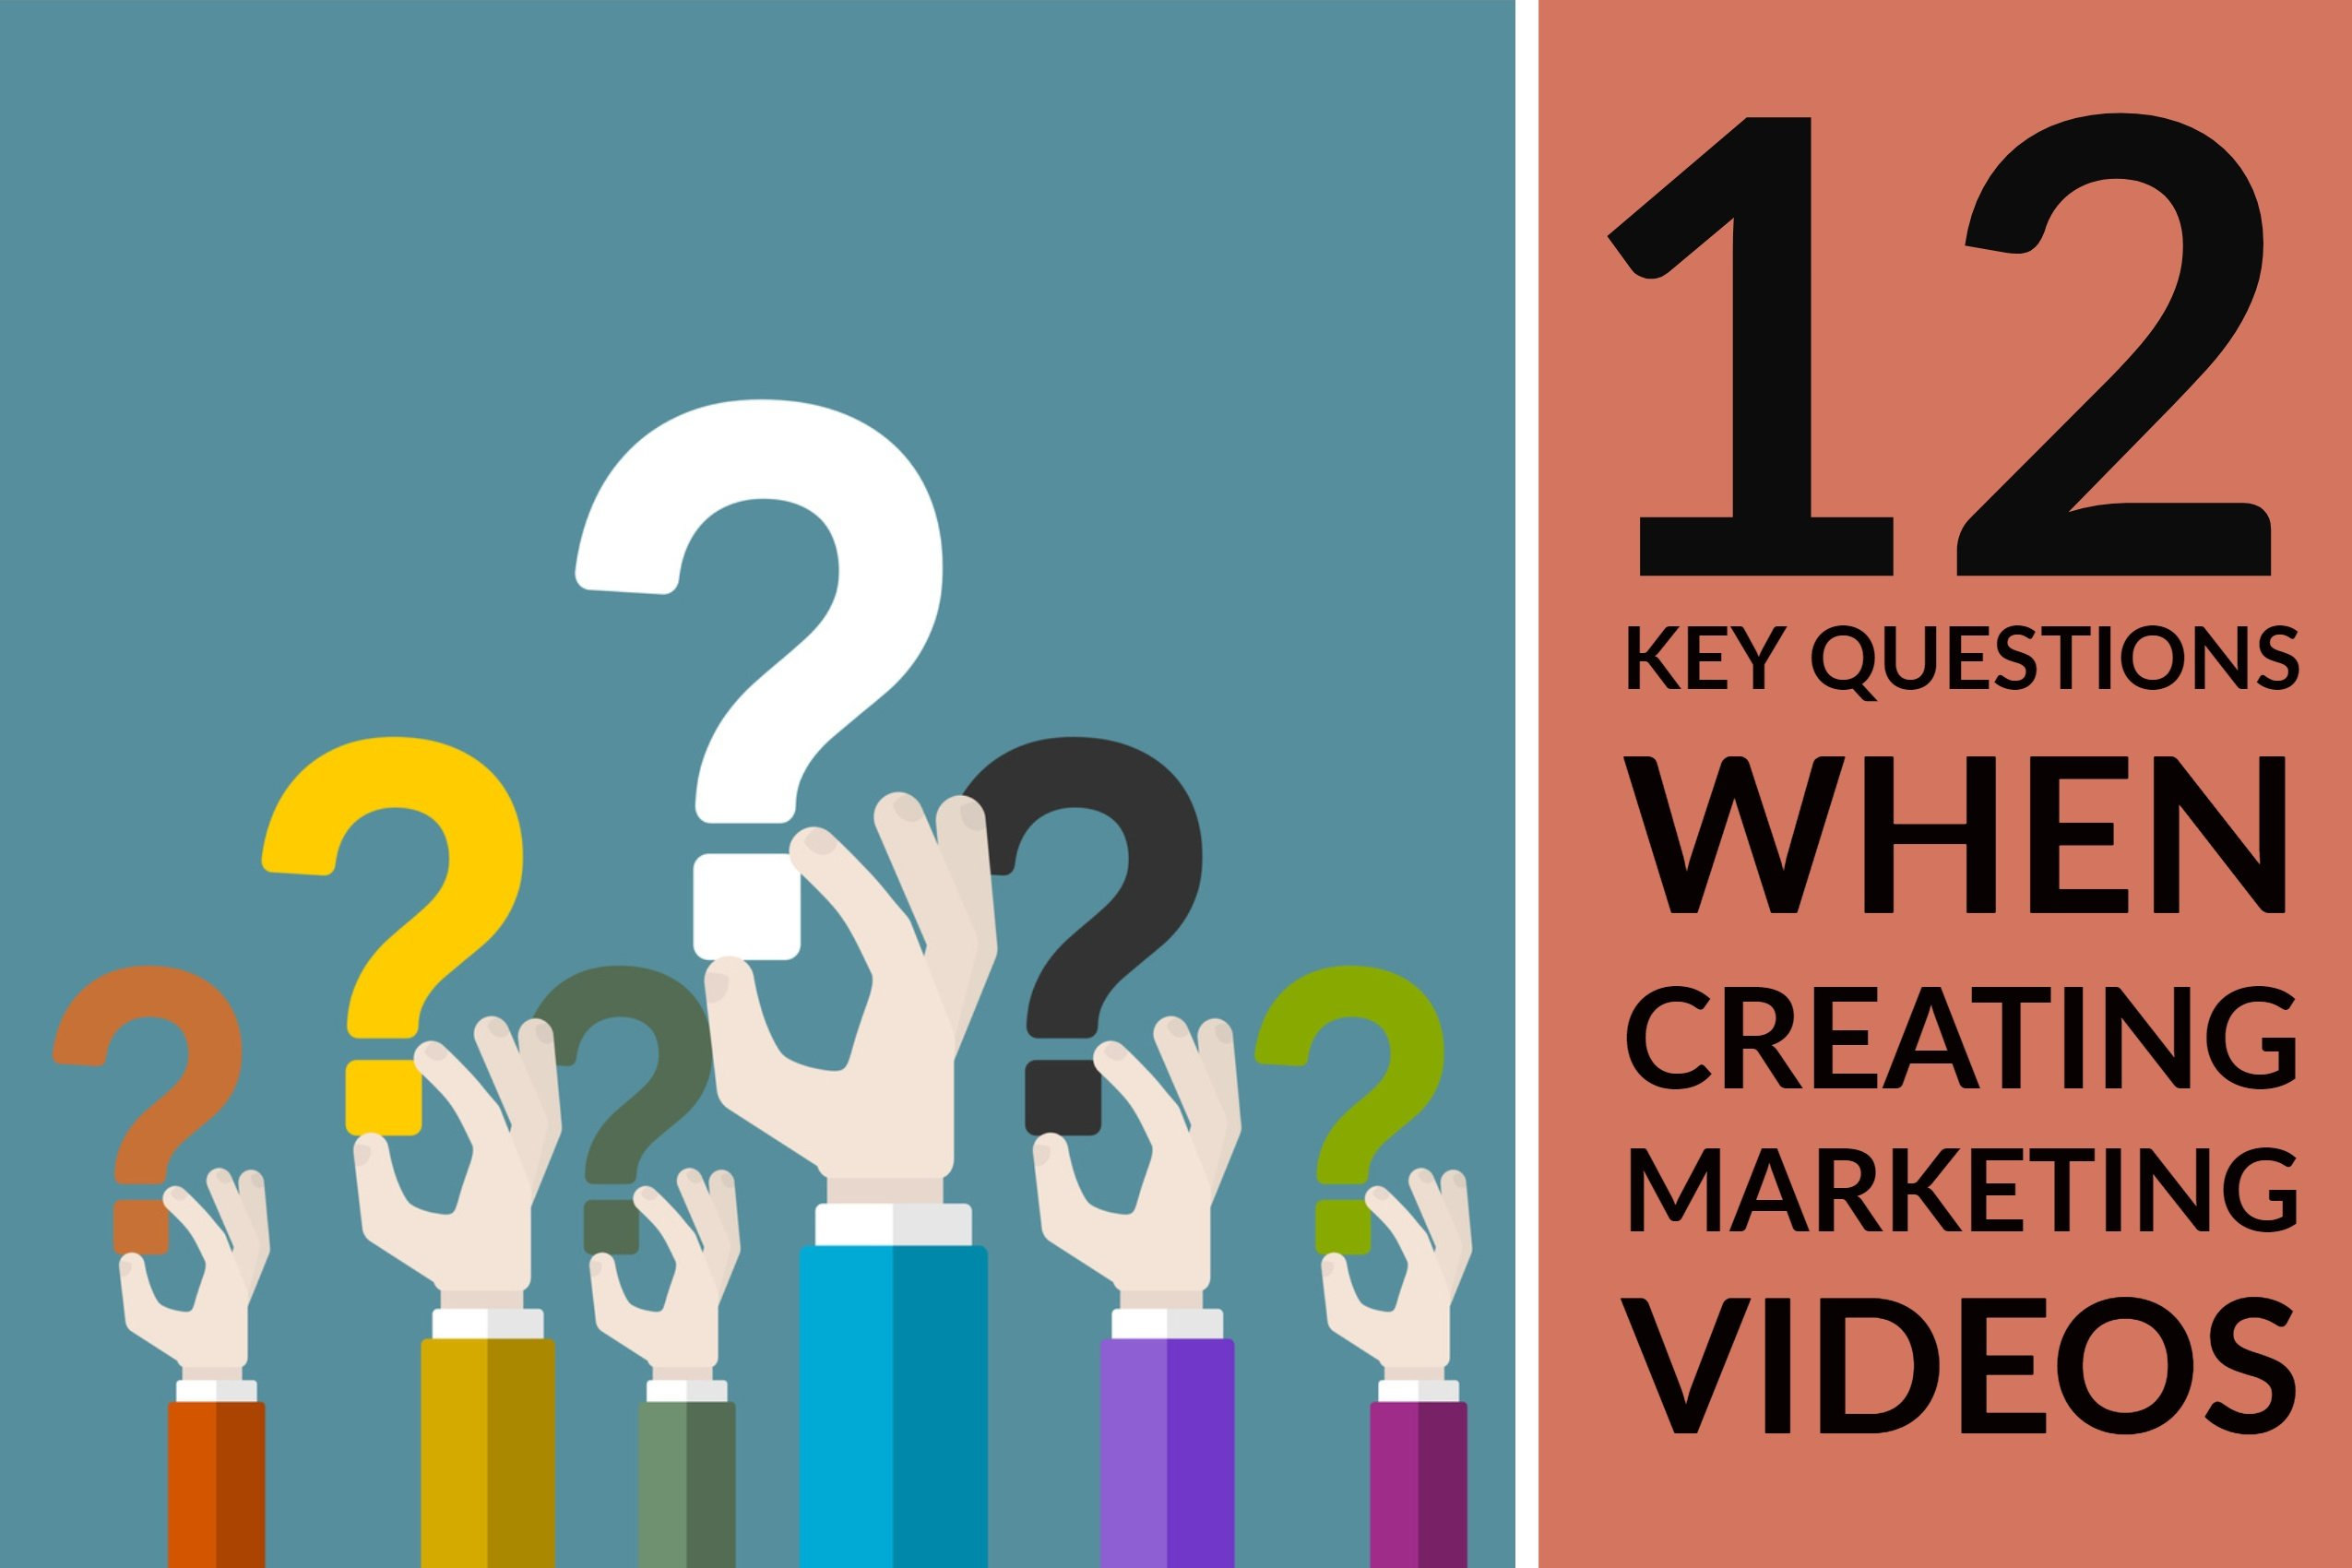 12 Key Questions When Creating Marketing Videos